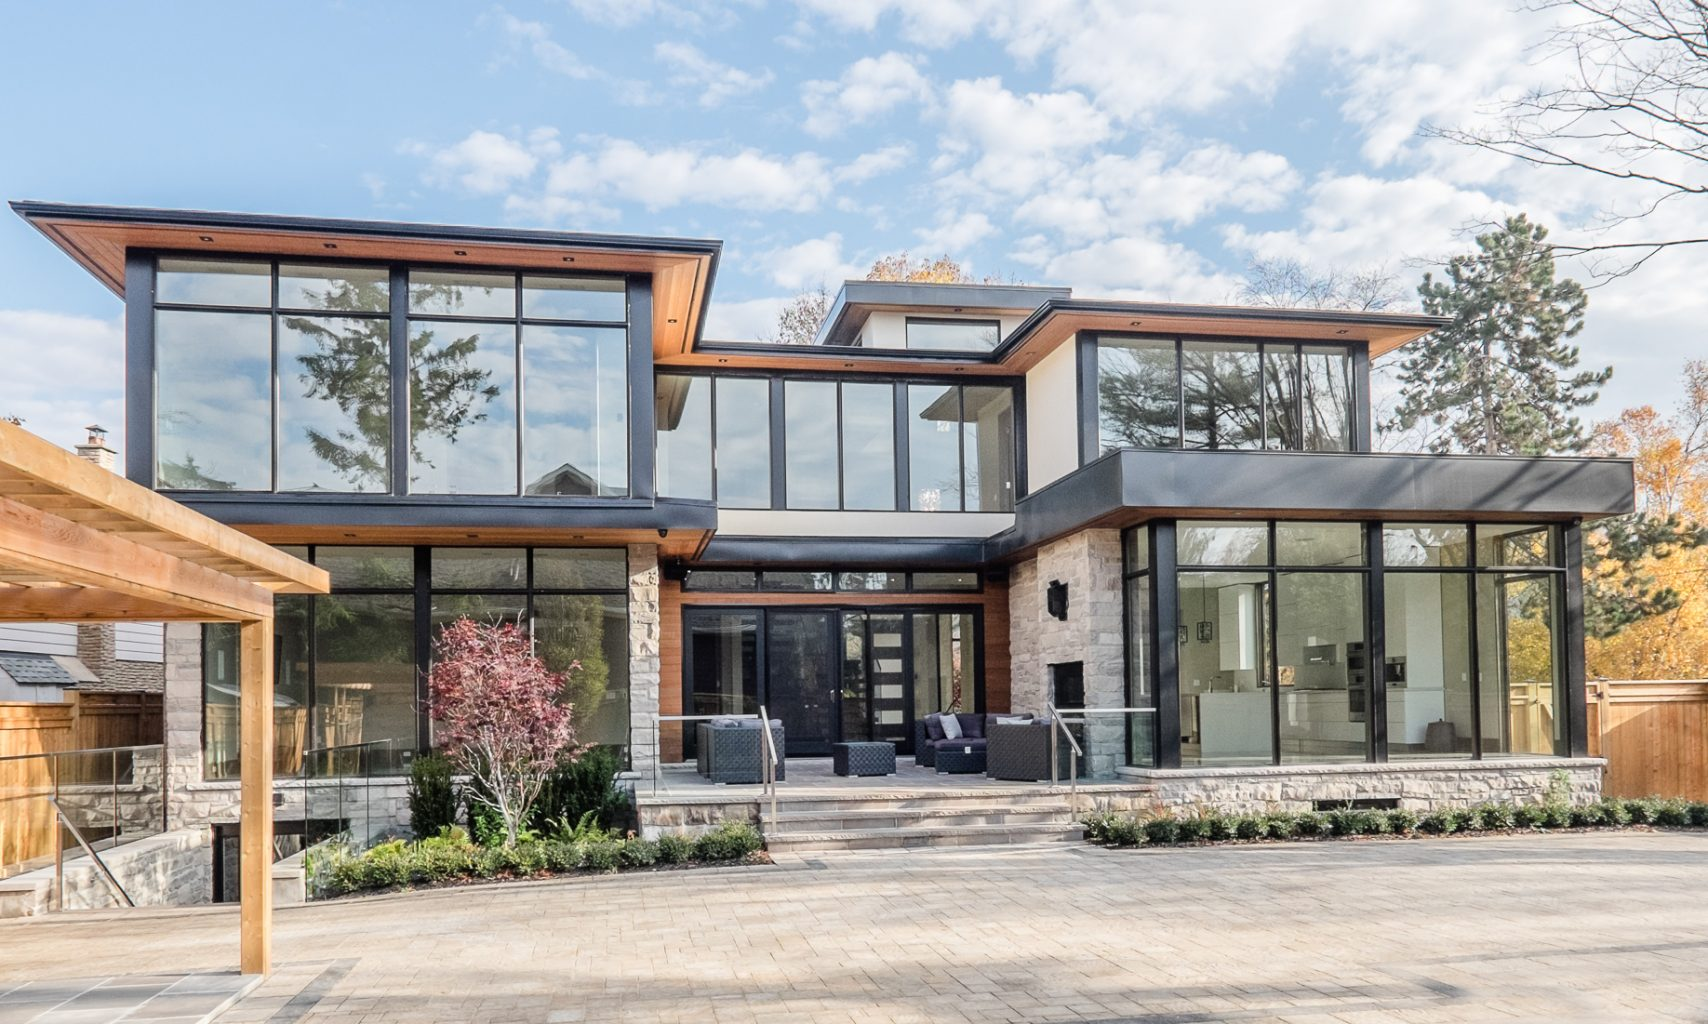 oakville-detached-home-with-glass-railings-05